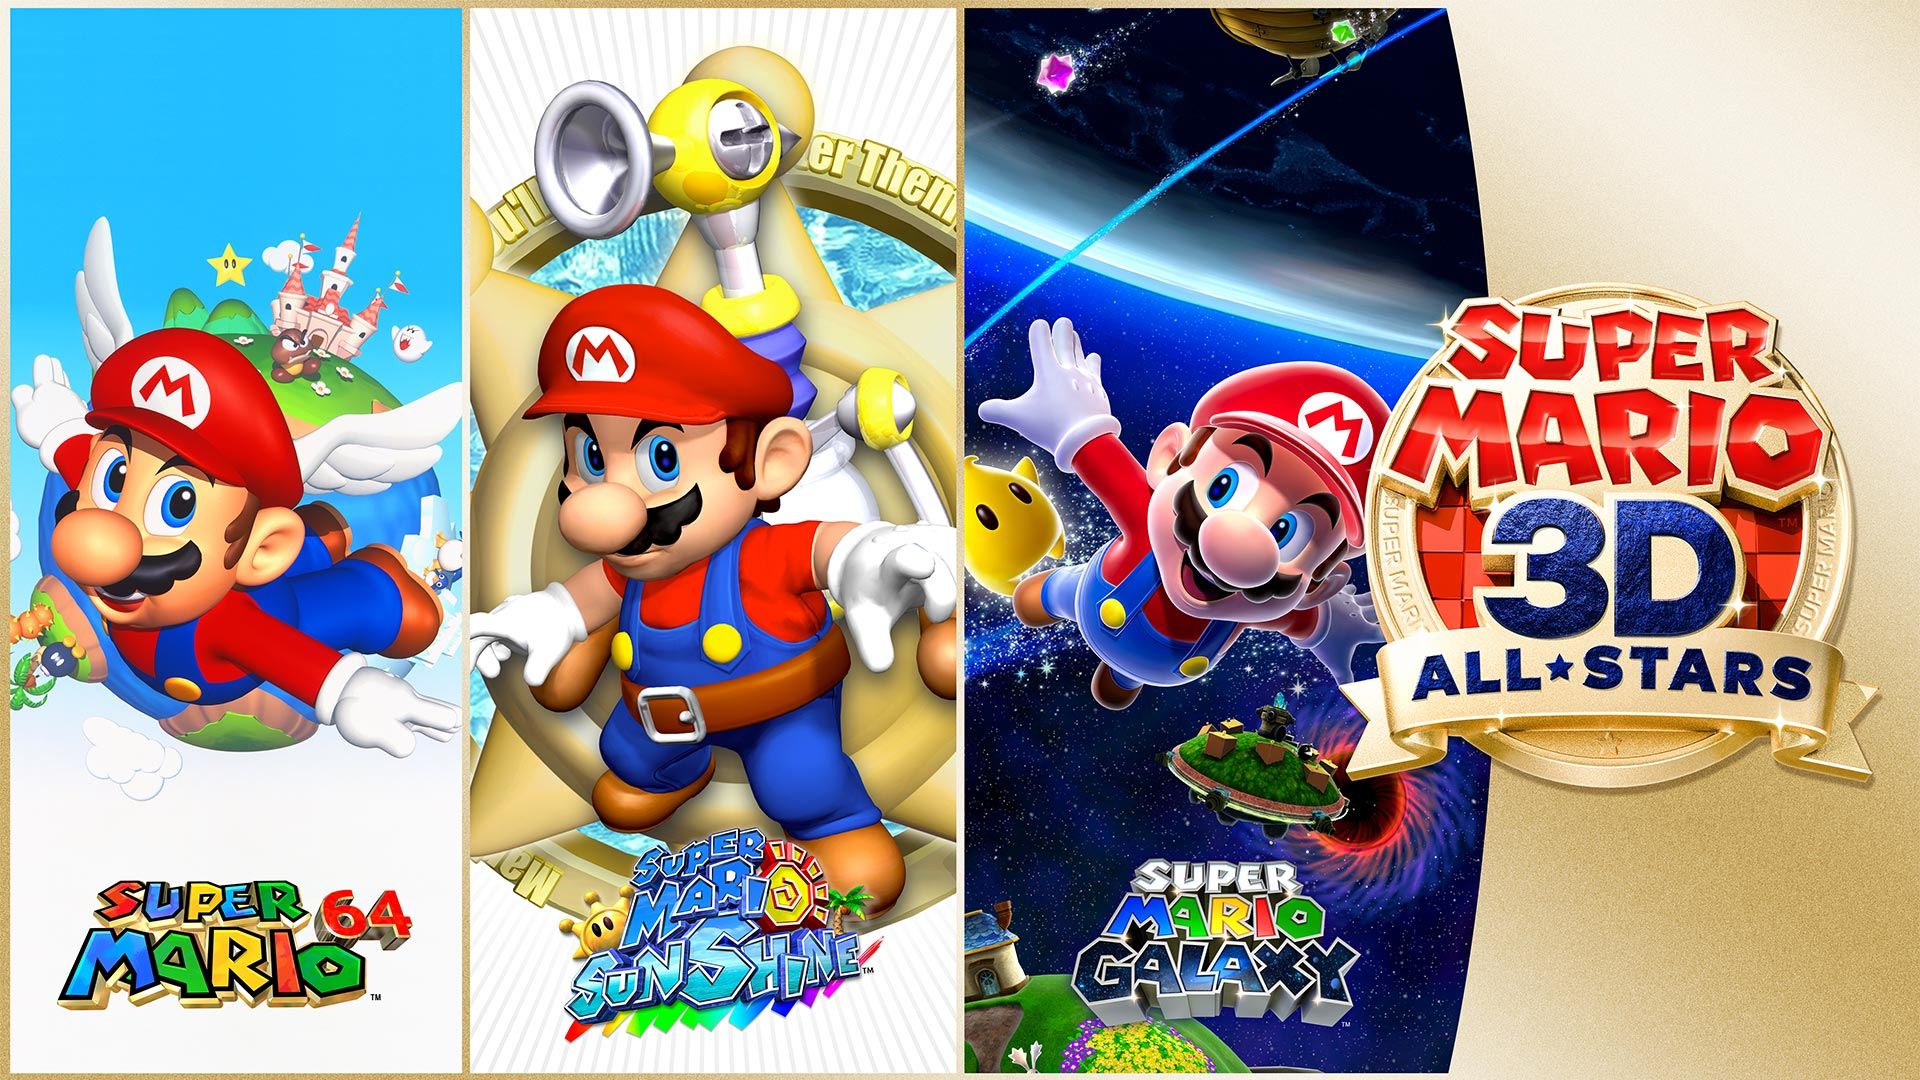 ACT Super Mario 3D All-Stars